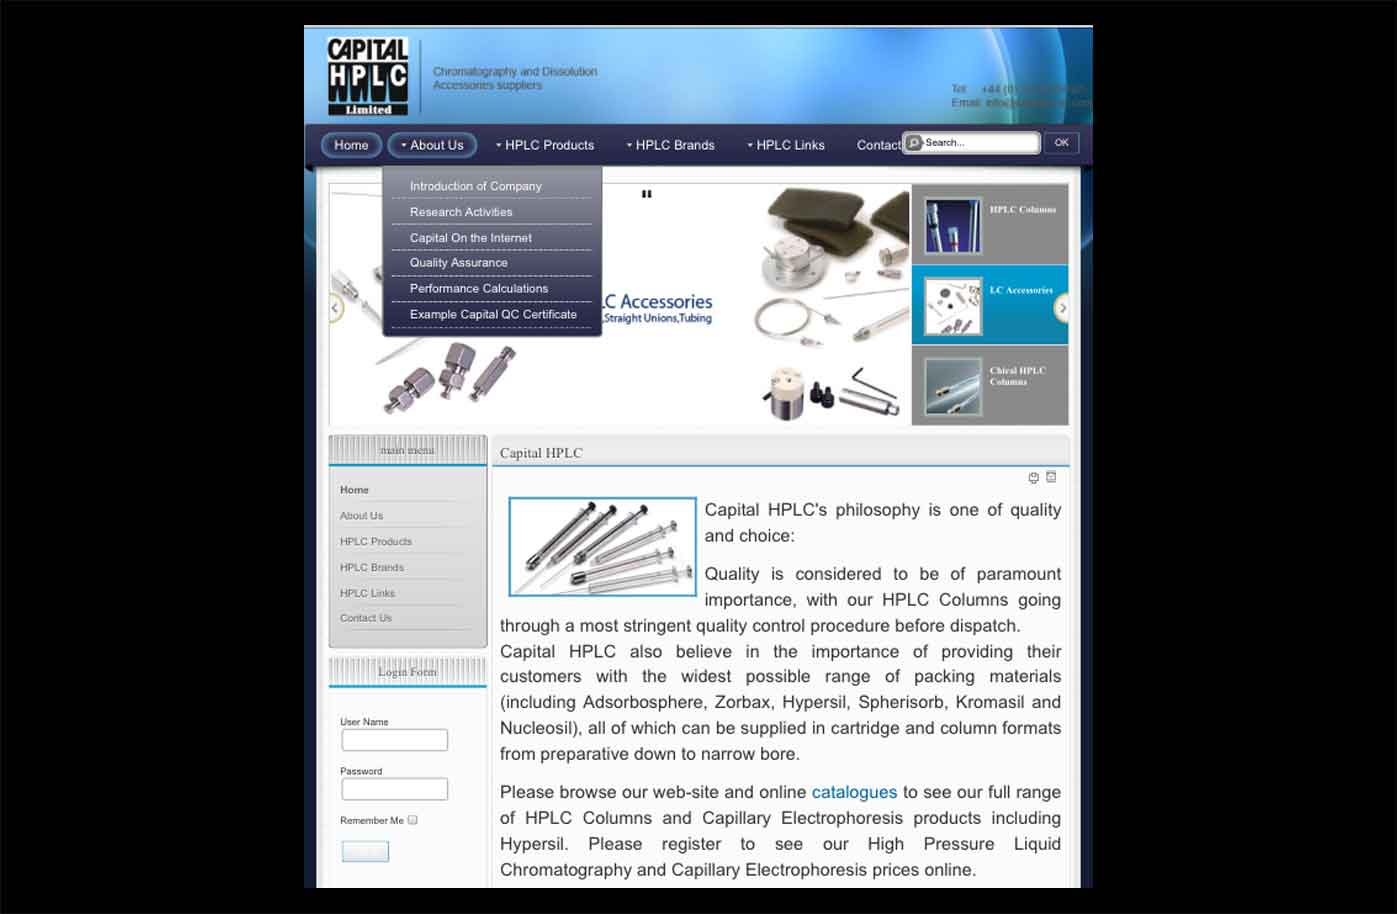 webdesign-webdevelopement-capitalhplc